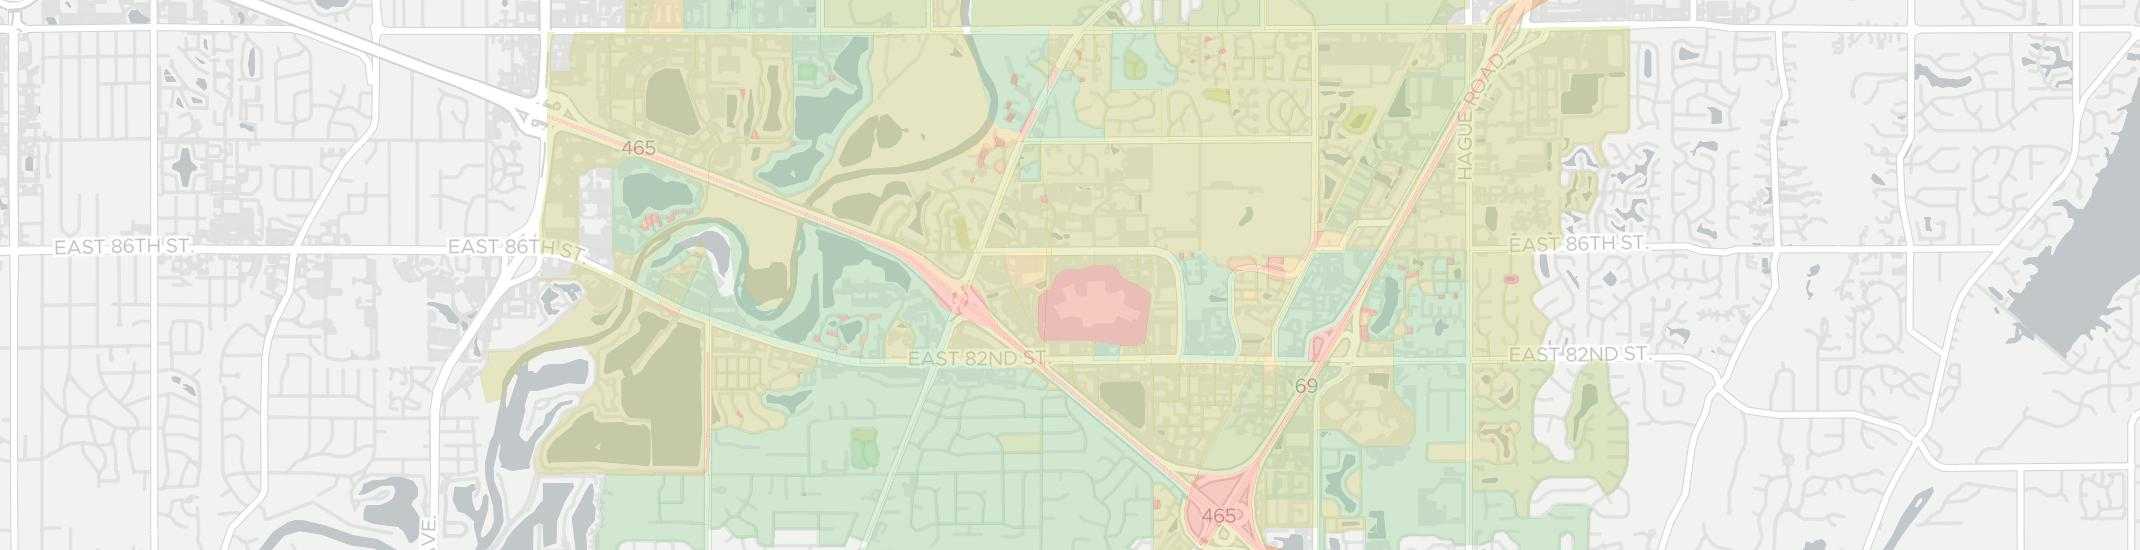 Castleton Internet Competition Map. Click for interactive map.